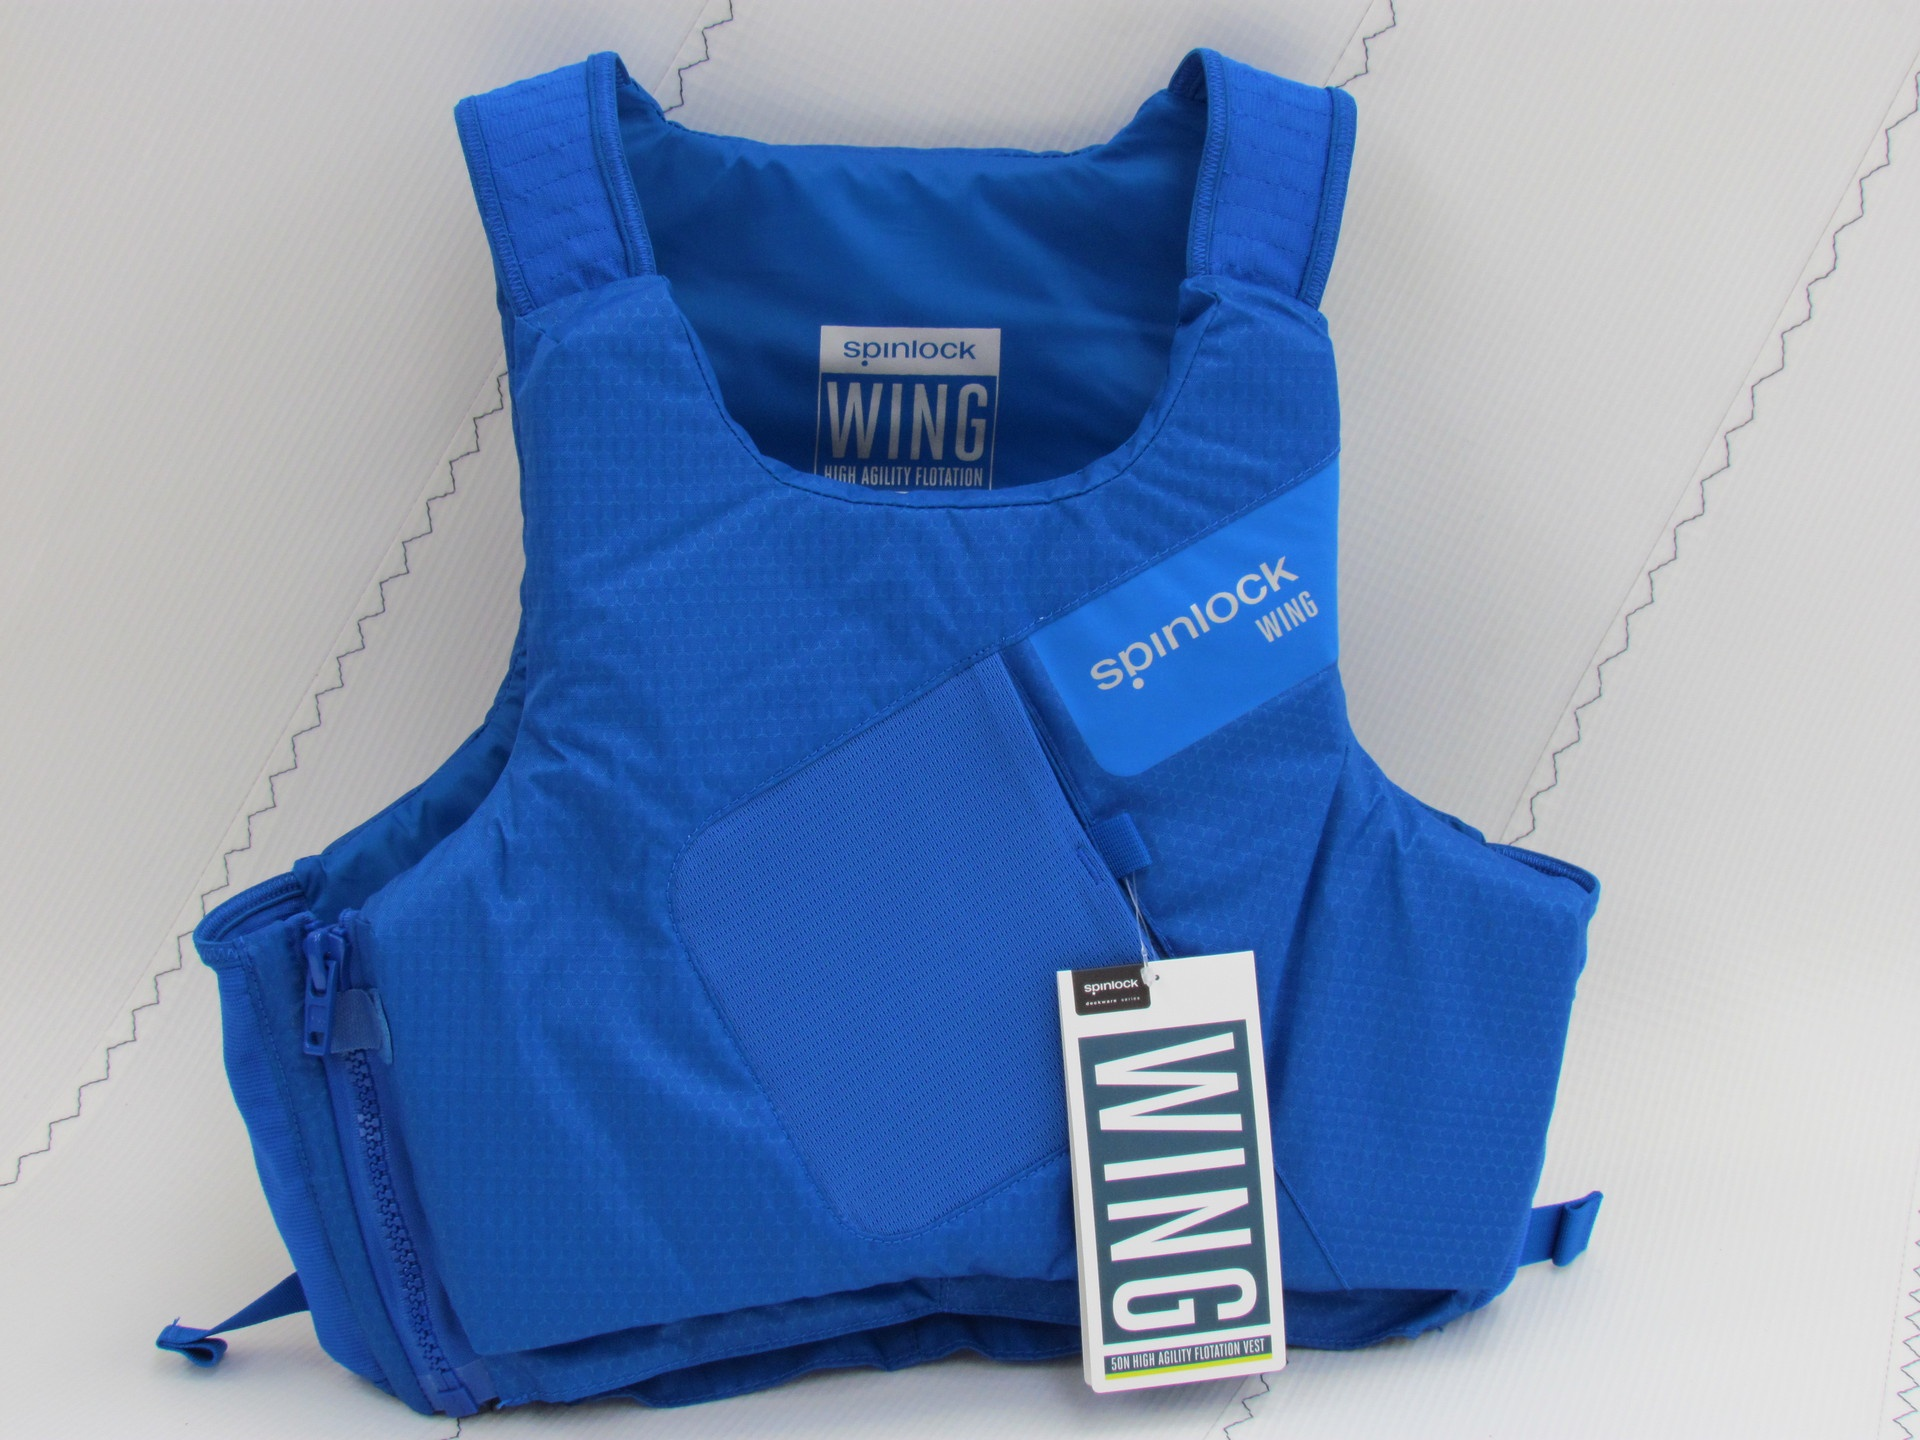 Spinlock Wing Side Zip PFD Cobalt Blue Size: Medium